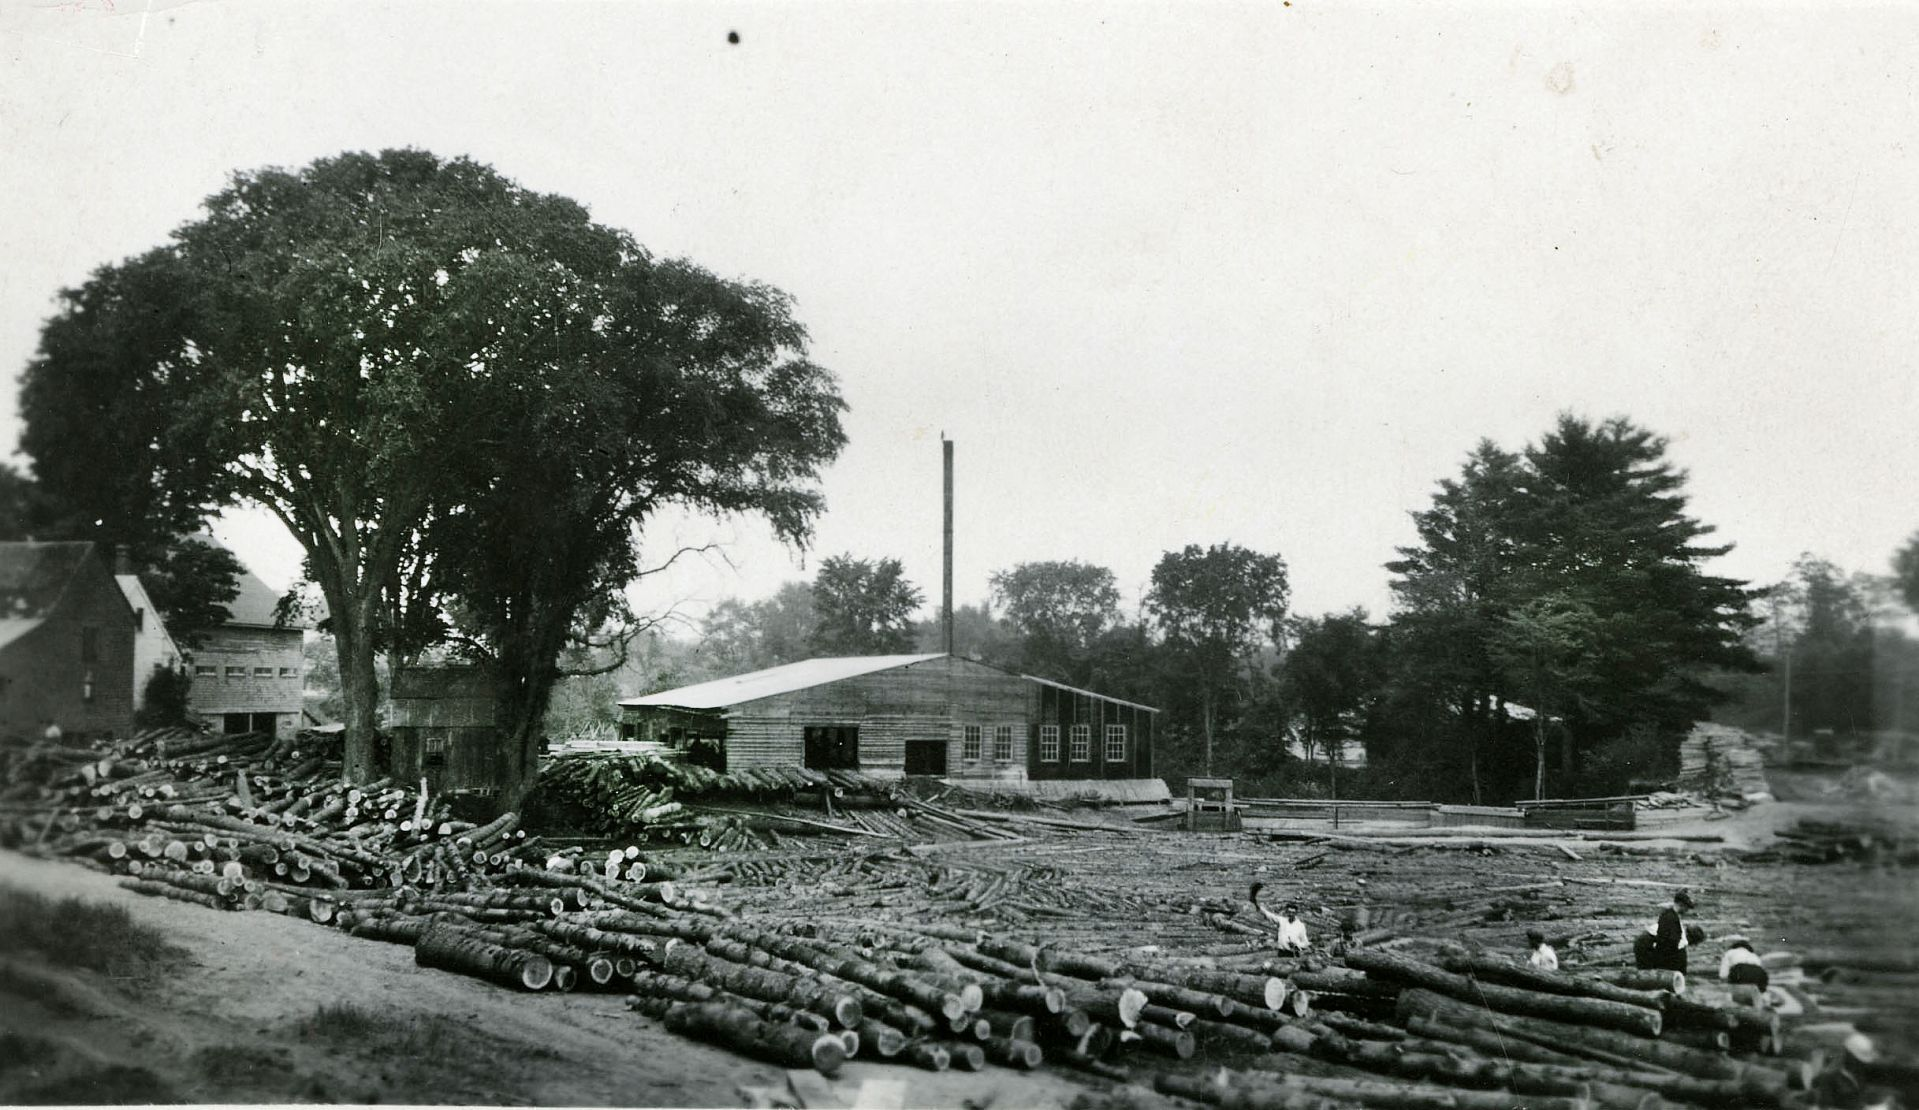 Circa 1932, white pine logs from the Bates Forest await processing at a mill pond in Alfred, Maine. (Muskie Archives and Special Collections Library)